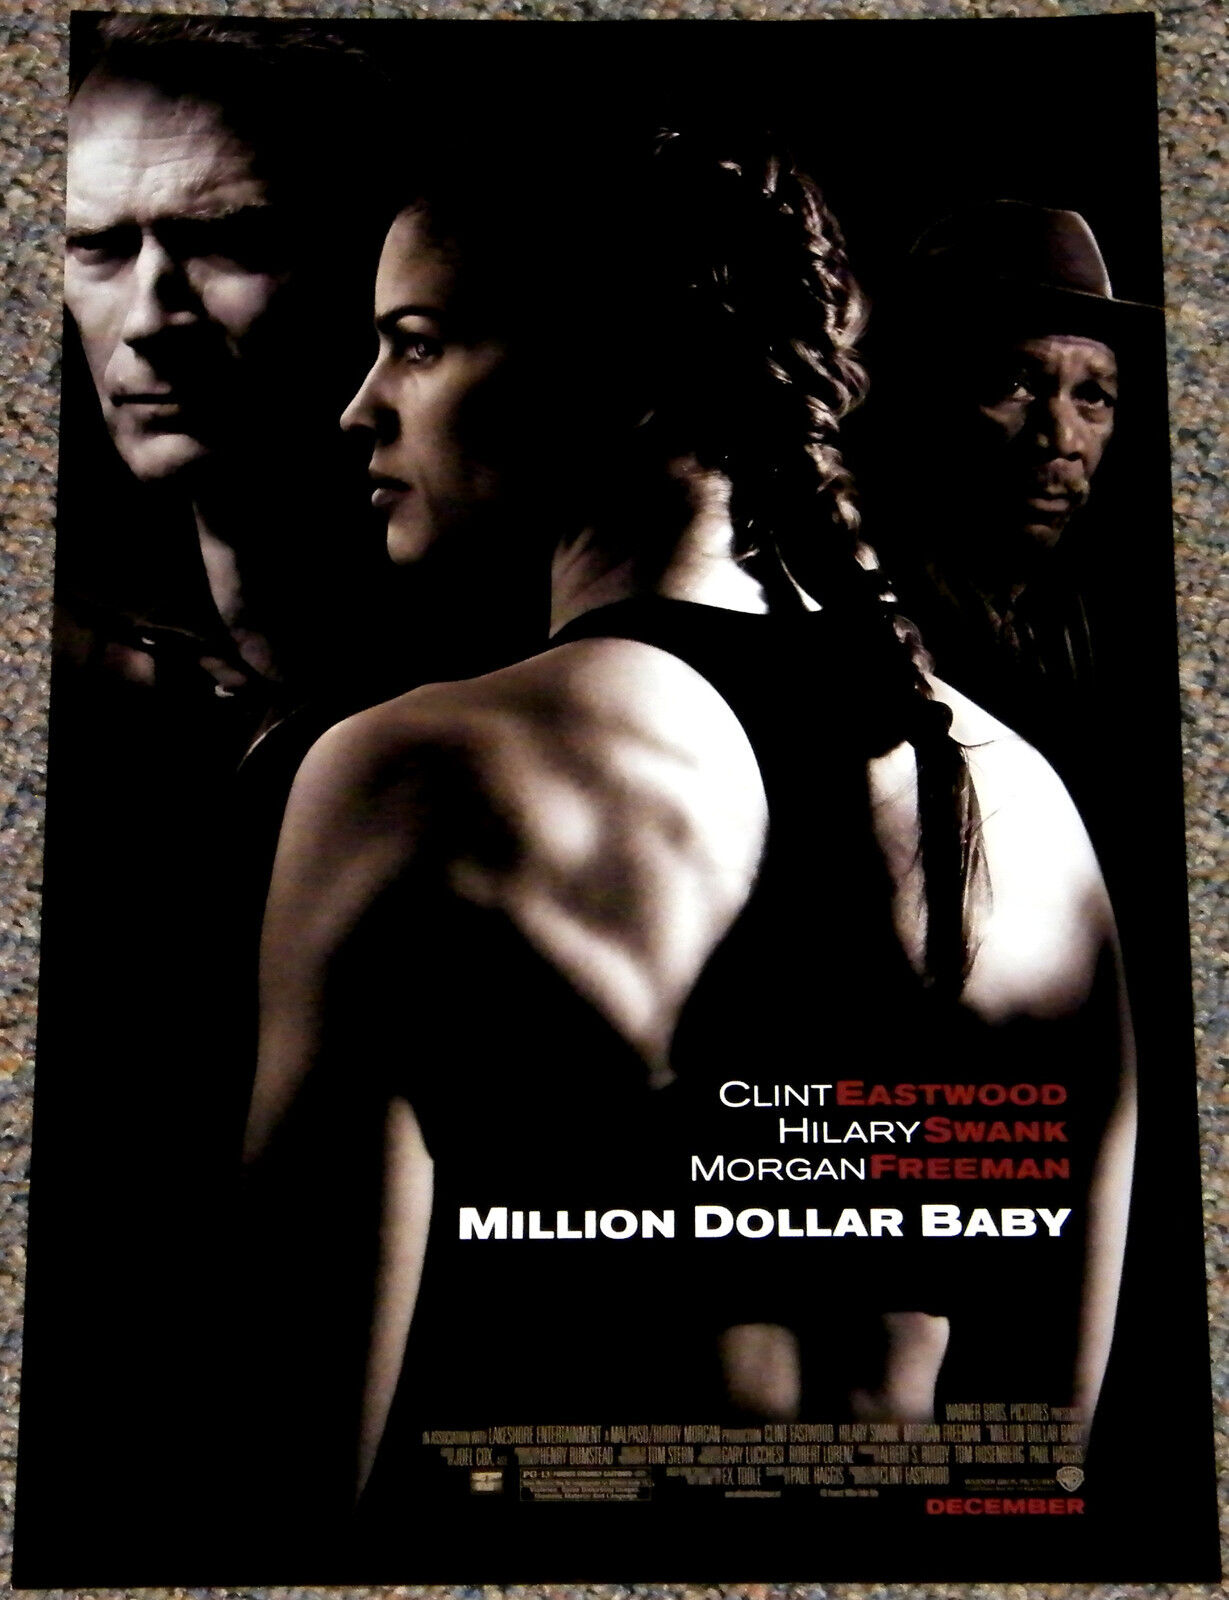 Million Dollar Baby 2004 Orig 11 X 17 Movie Poster Clint Eastwood Boxing Classic For Sale Online Ebay